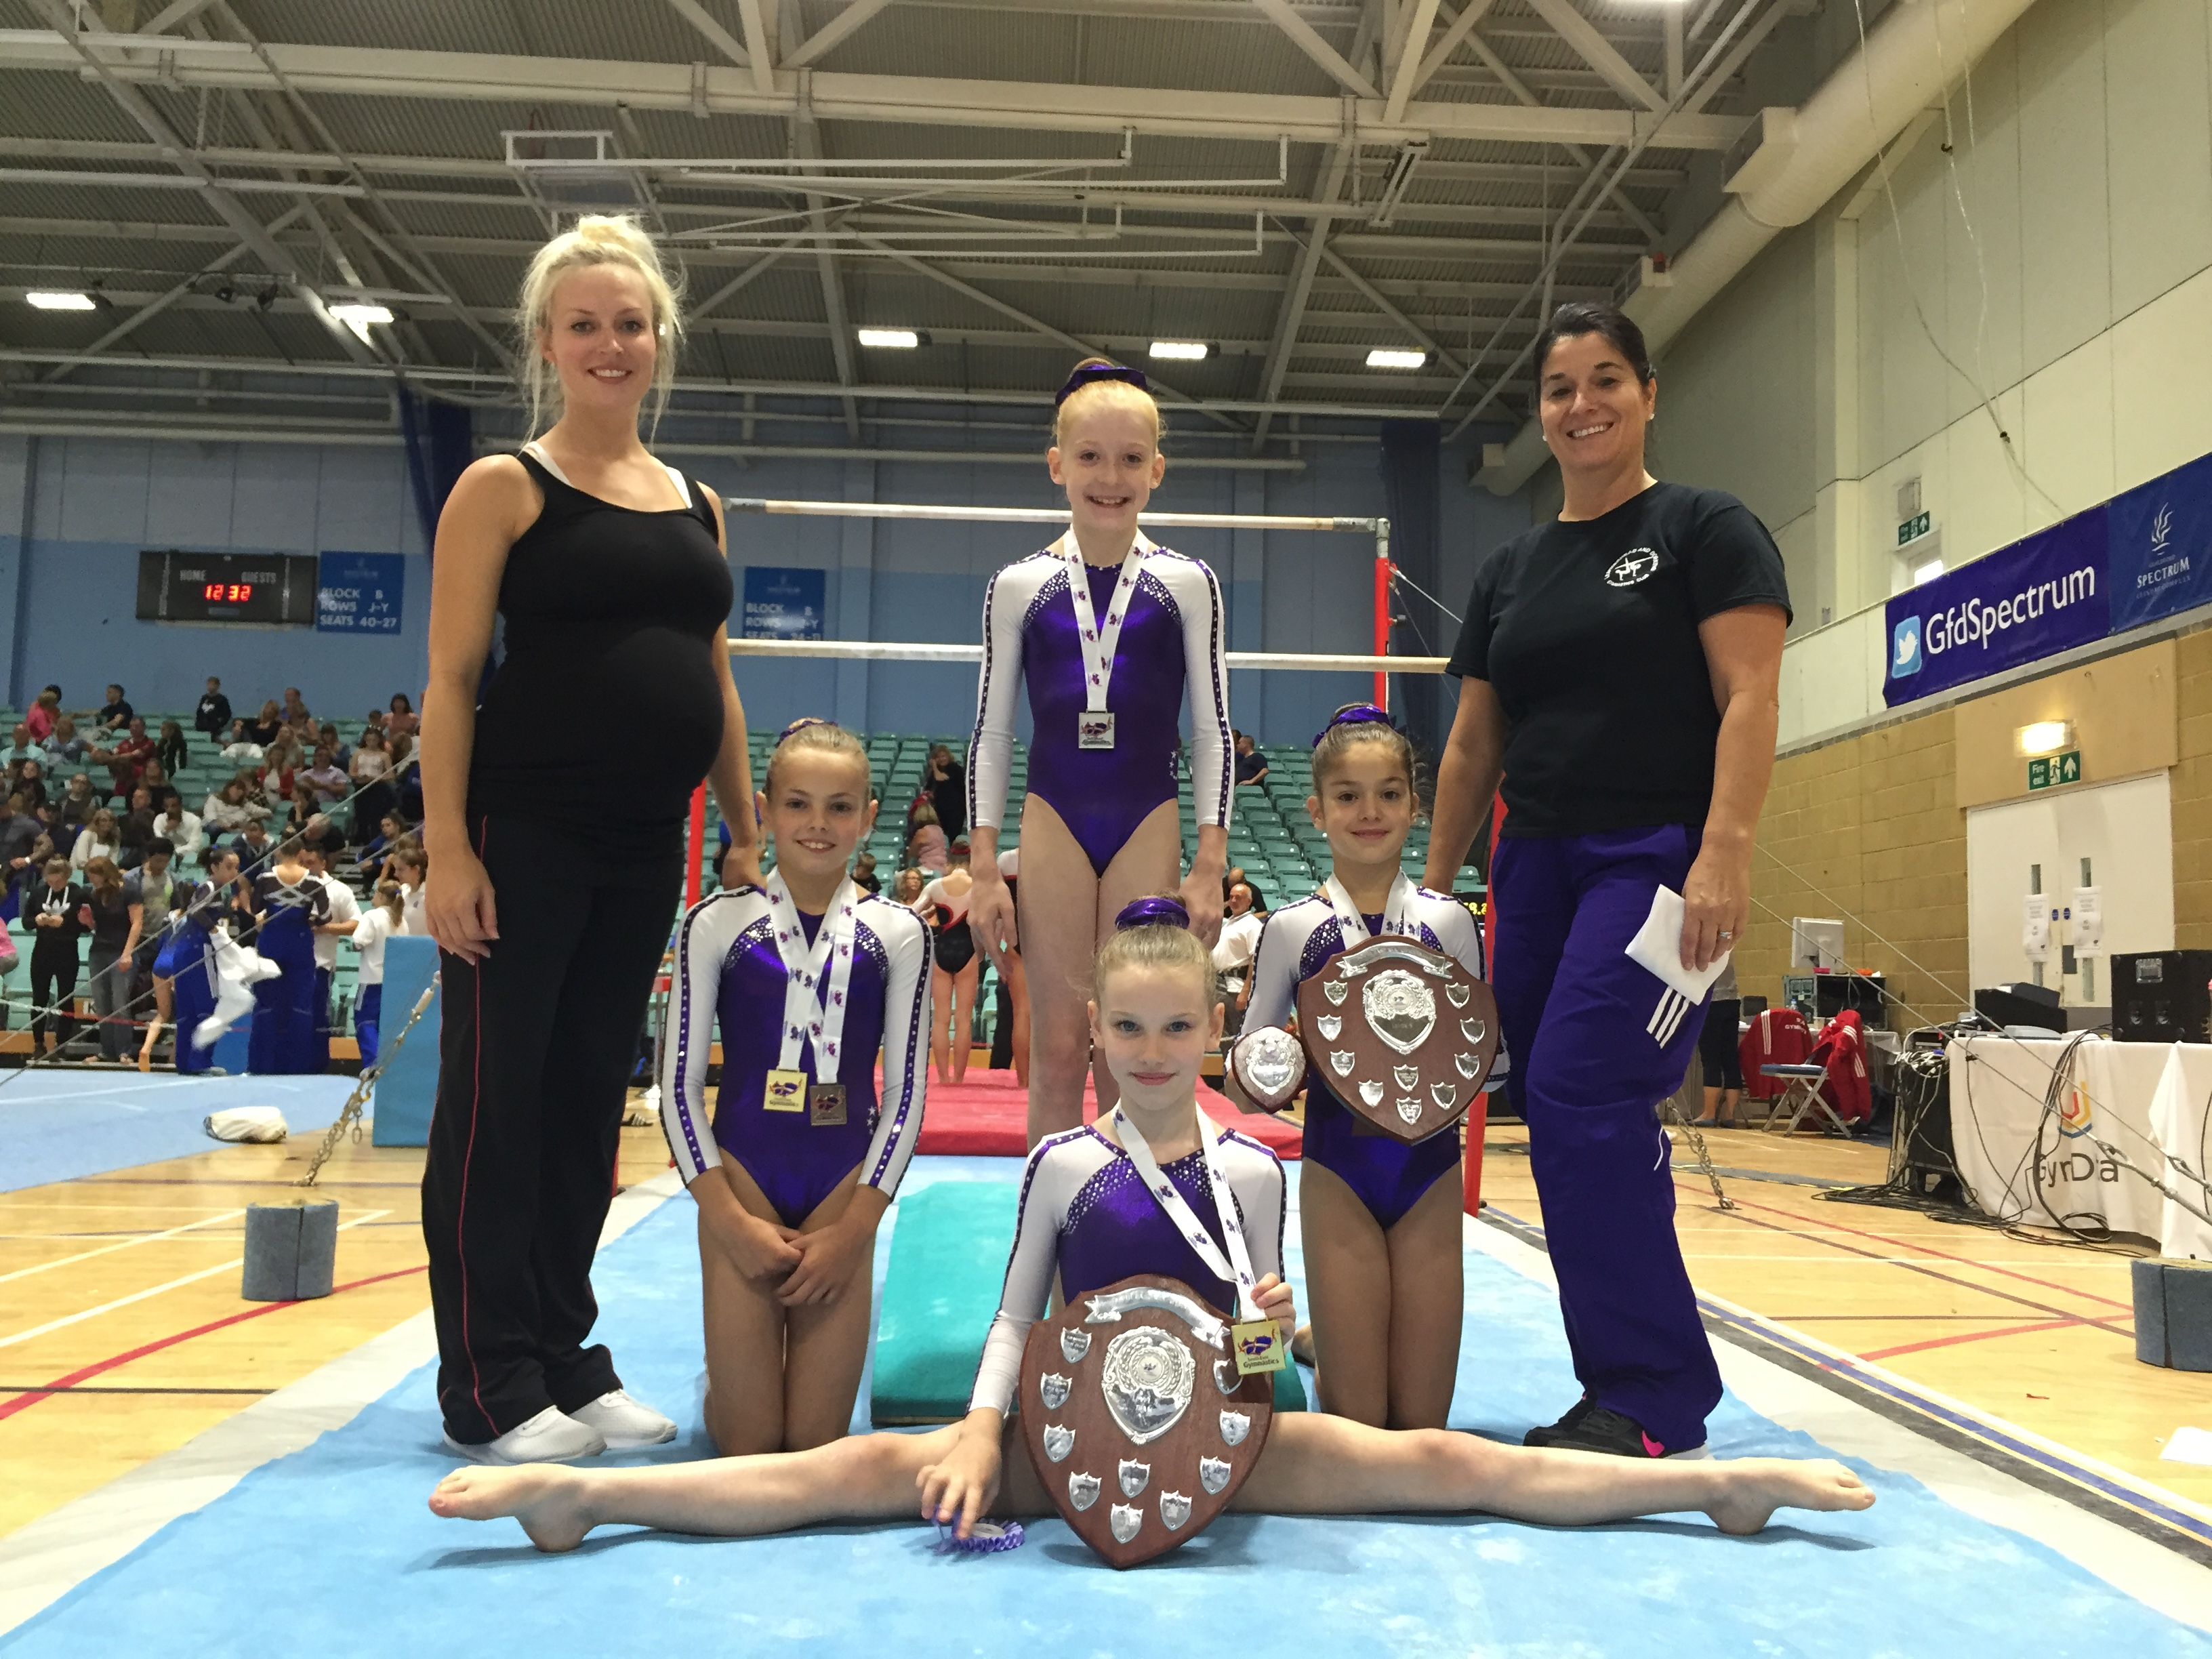 2844baa546c5 ... recognised the achievement of the gymnasts but the hard work of coaches  Sadie Herbert ,Alicia Mayhew, Katy Lennon , Katherine Would and Natalie  Davies.